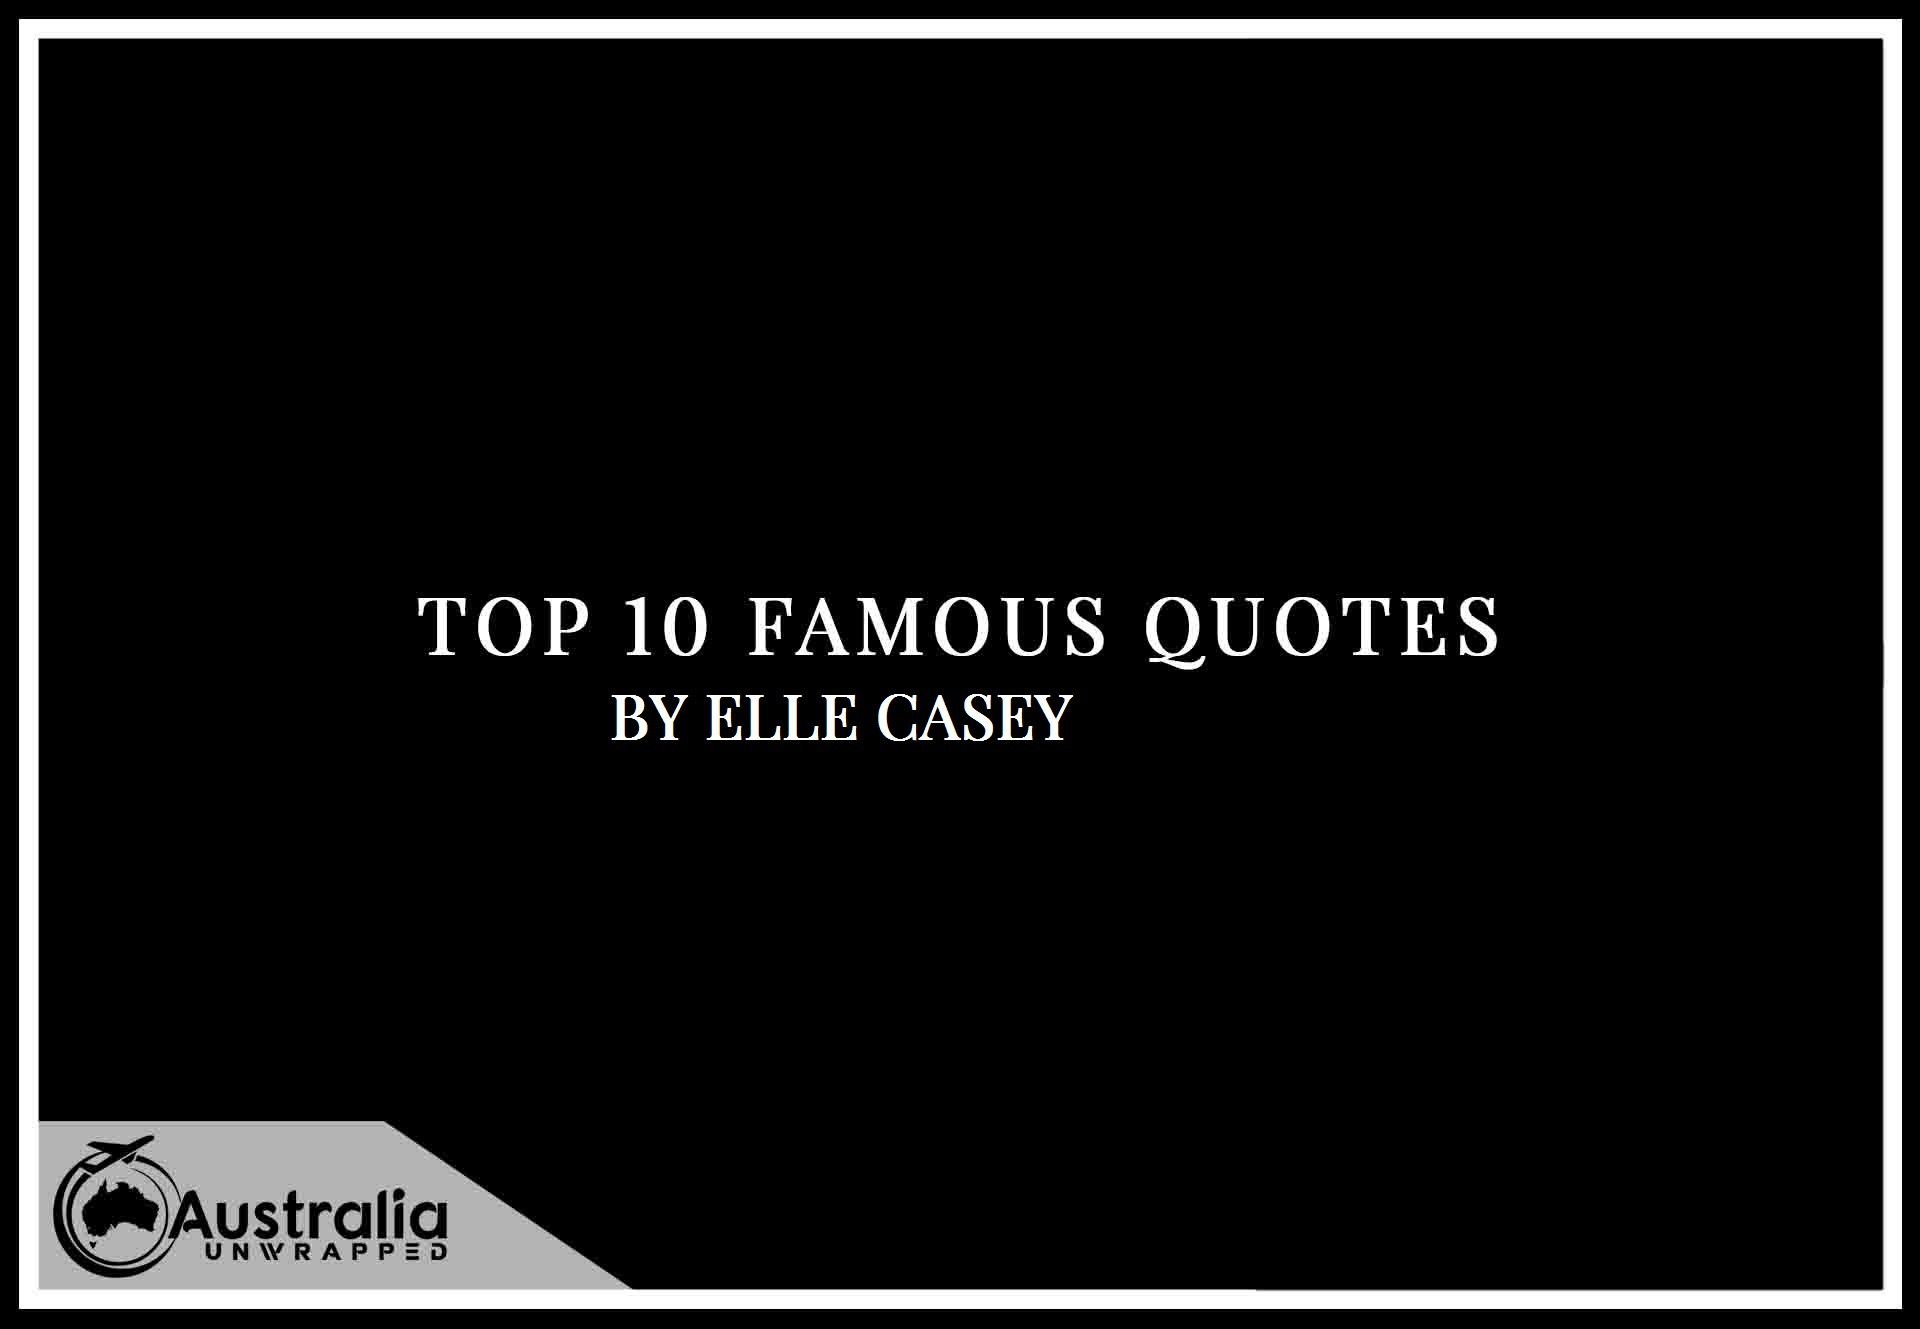 Elle casey's Top 10 Popular and Famous Quotes